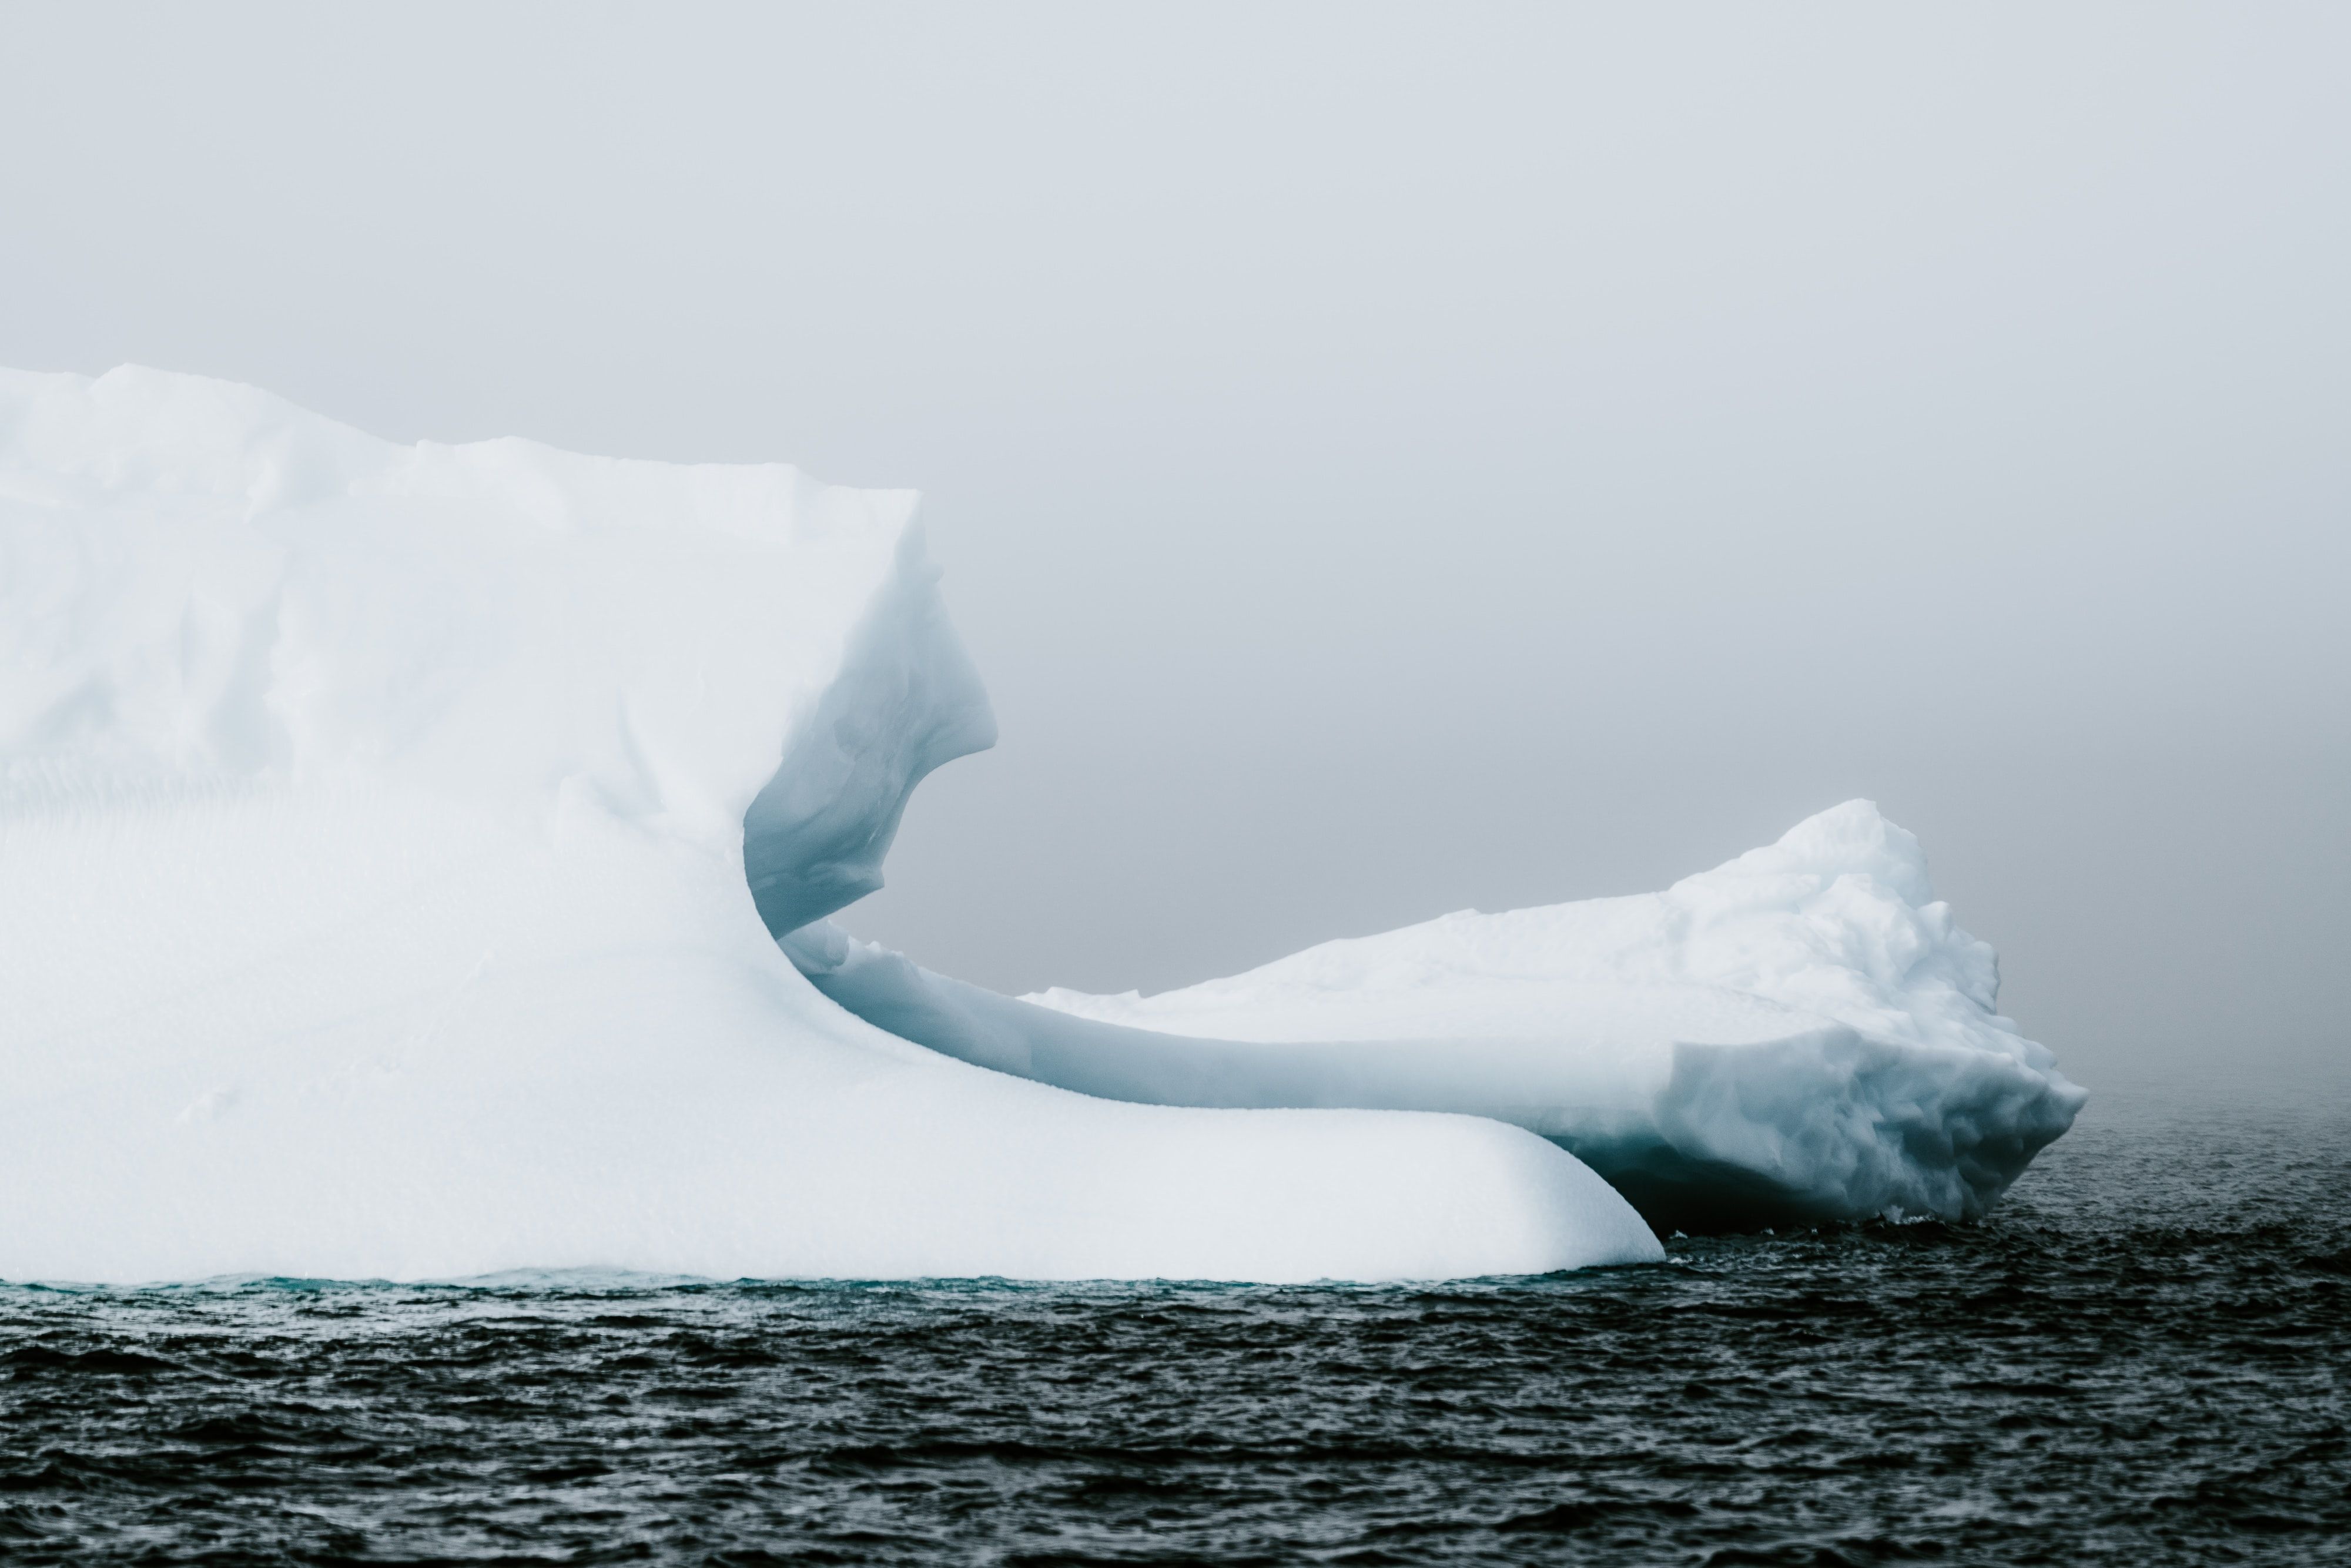 iceberg on sea under dark cloud